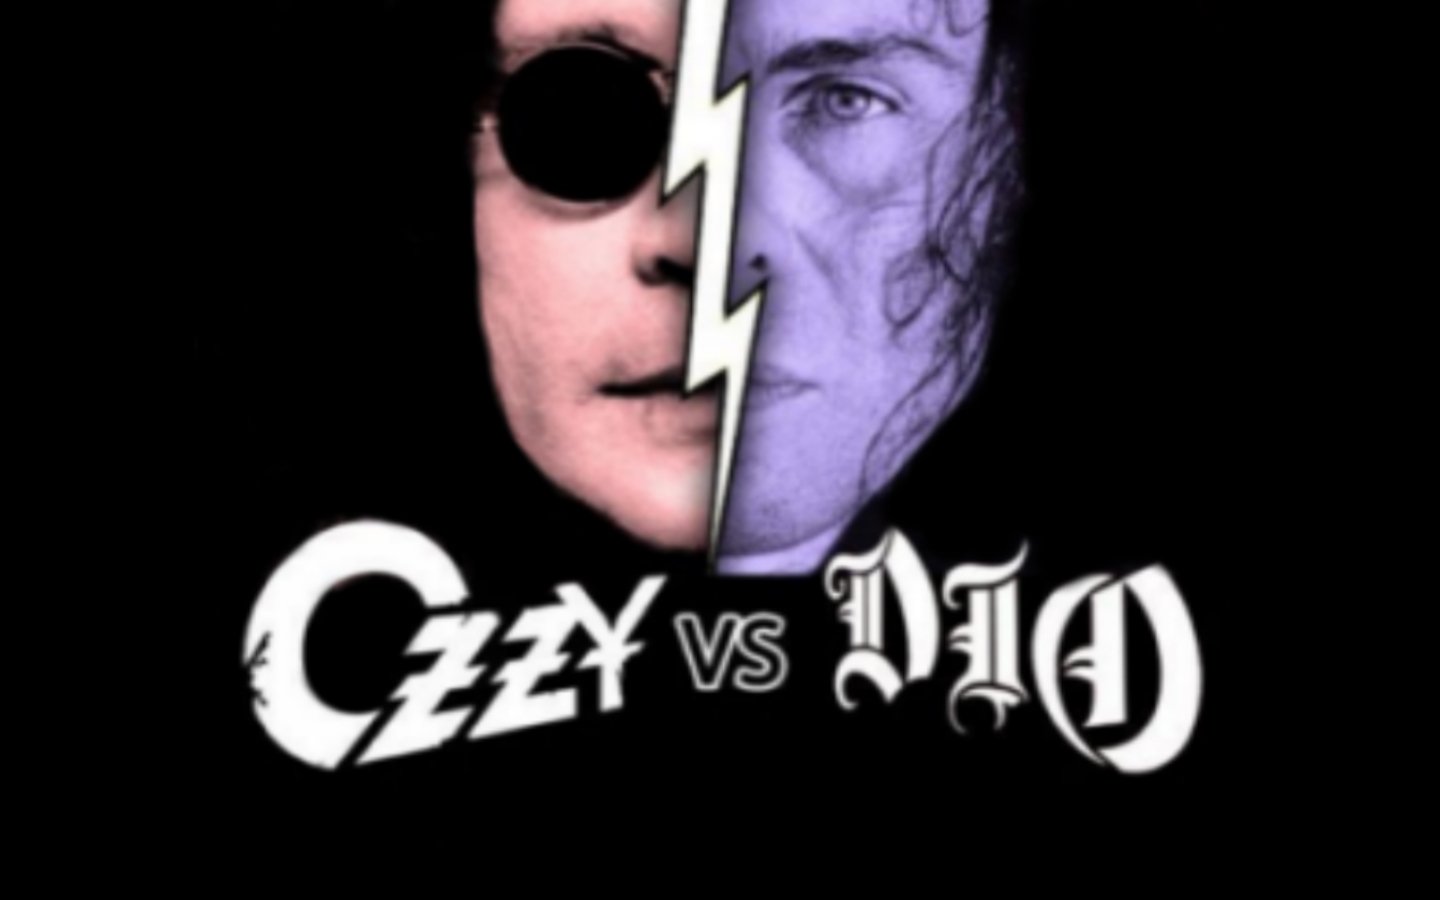 Girl With Guitar Hd Wallpaper 1 Ozzy Vs Dio Hd Wallpapers Backgrounds Wallpaper Abyss